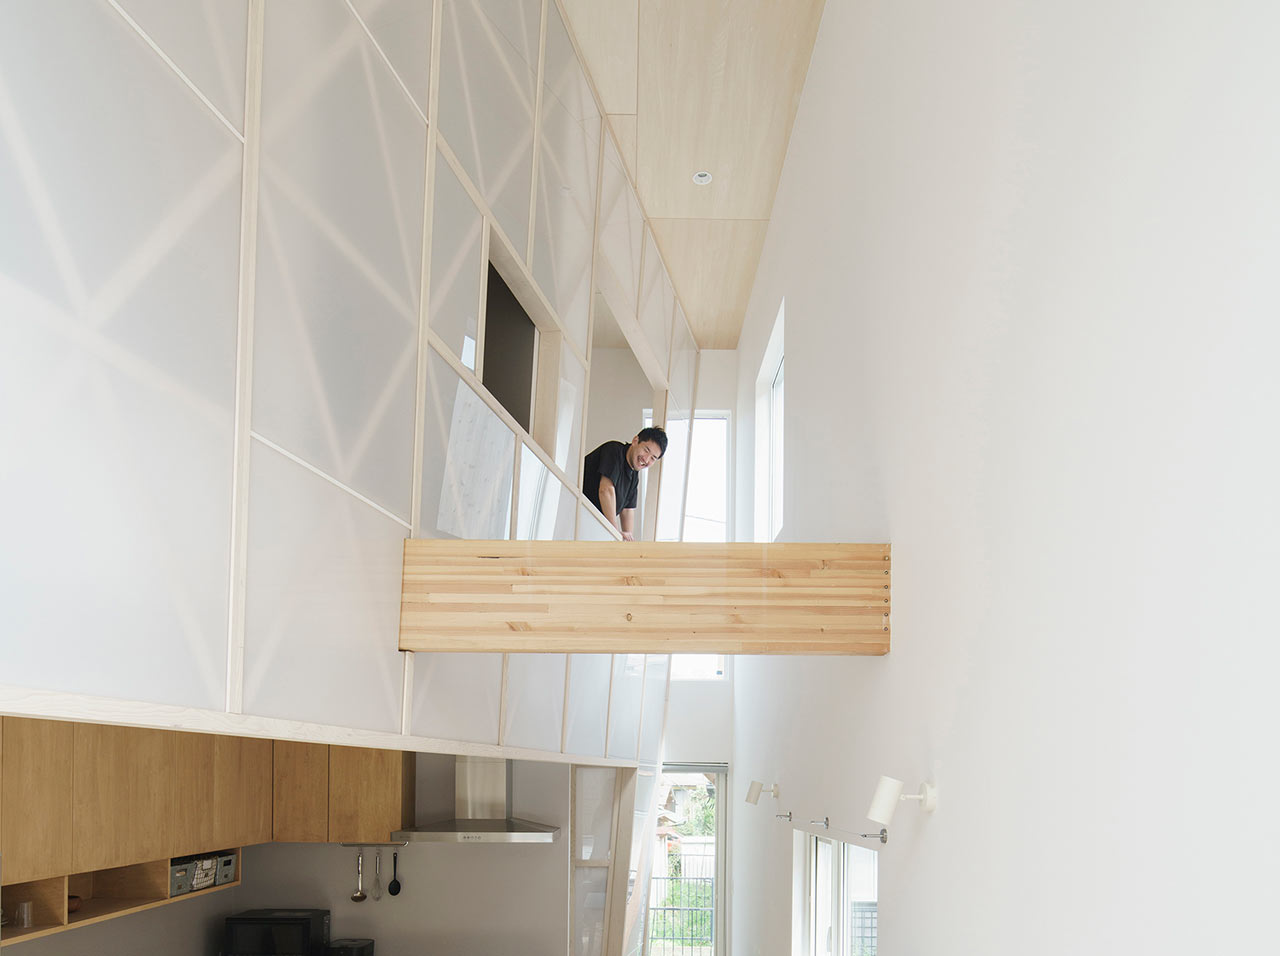 A Small Wooden House in Hayama with an Acrylic Gridded 'Curtain'